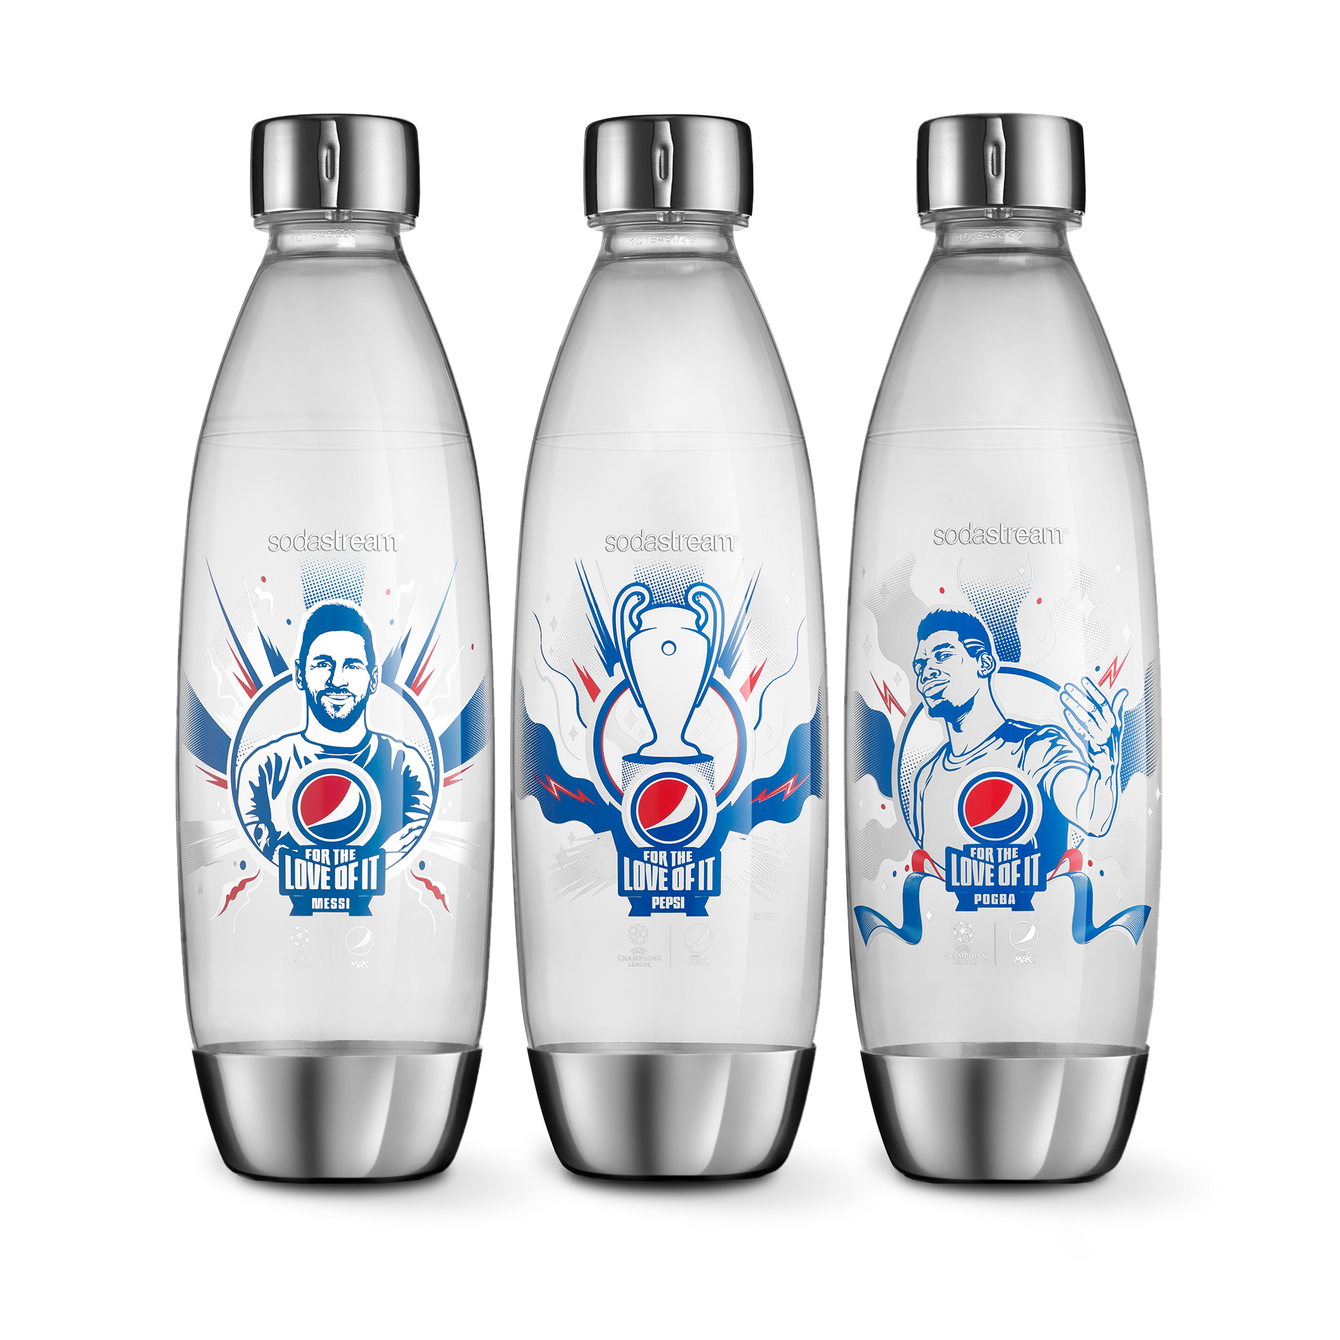 sodastream 3-pack Pepsi flaskor